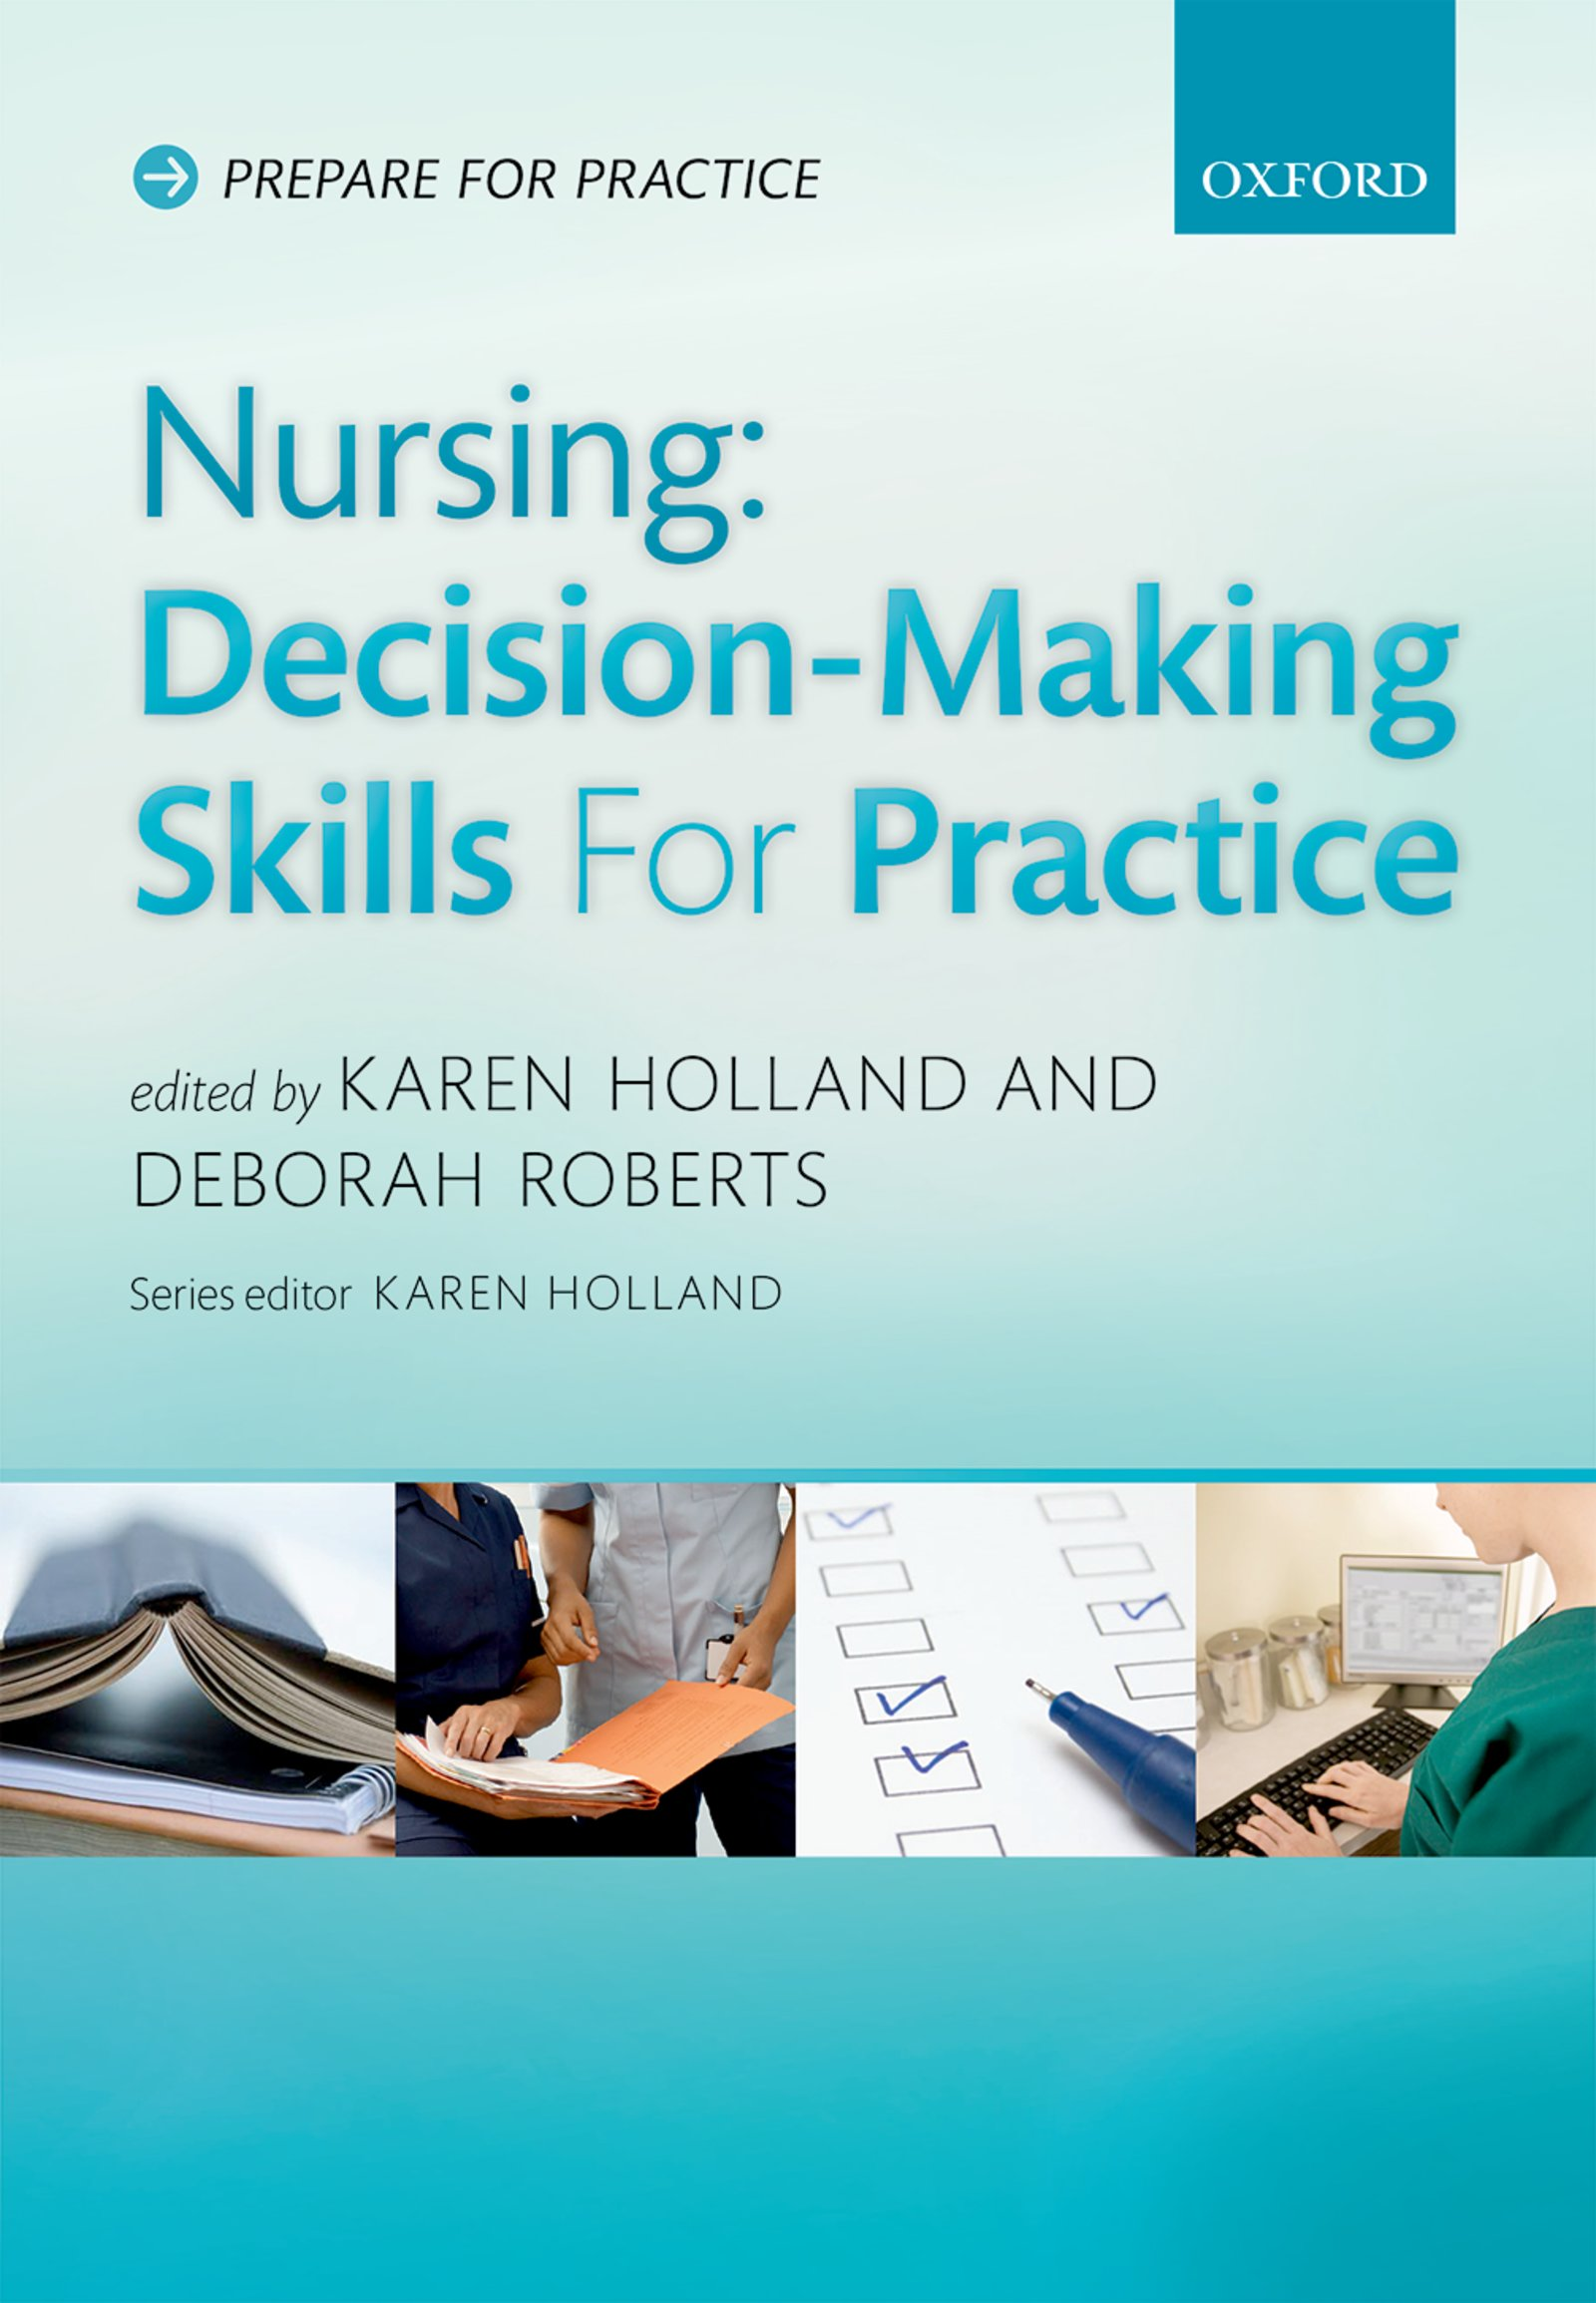 Nursing: Decision-Making Skills for Practice